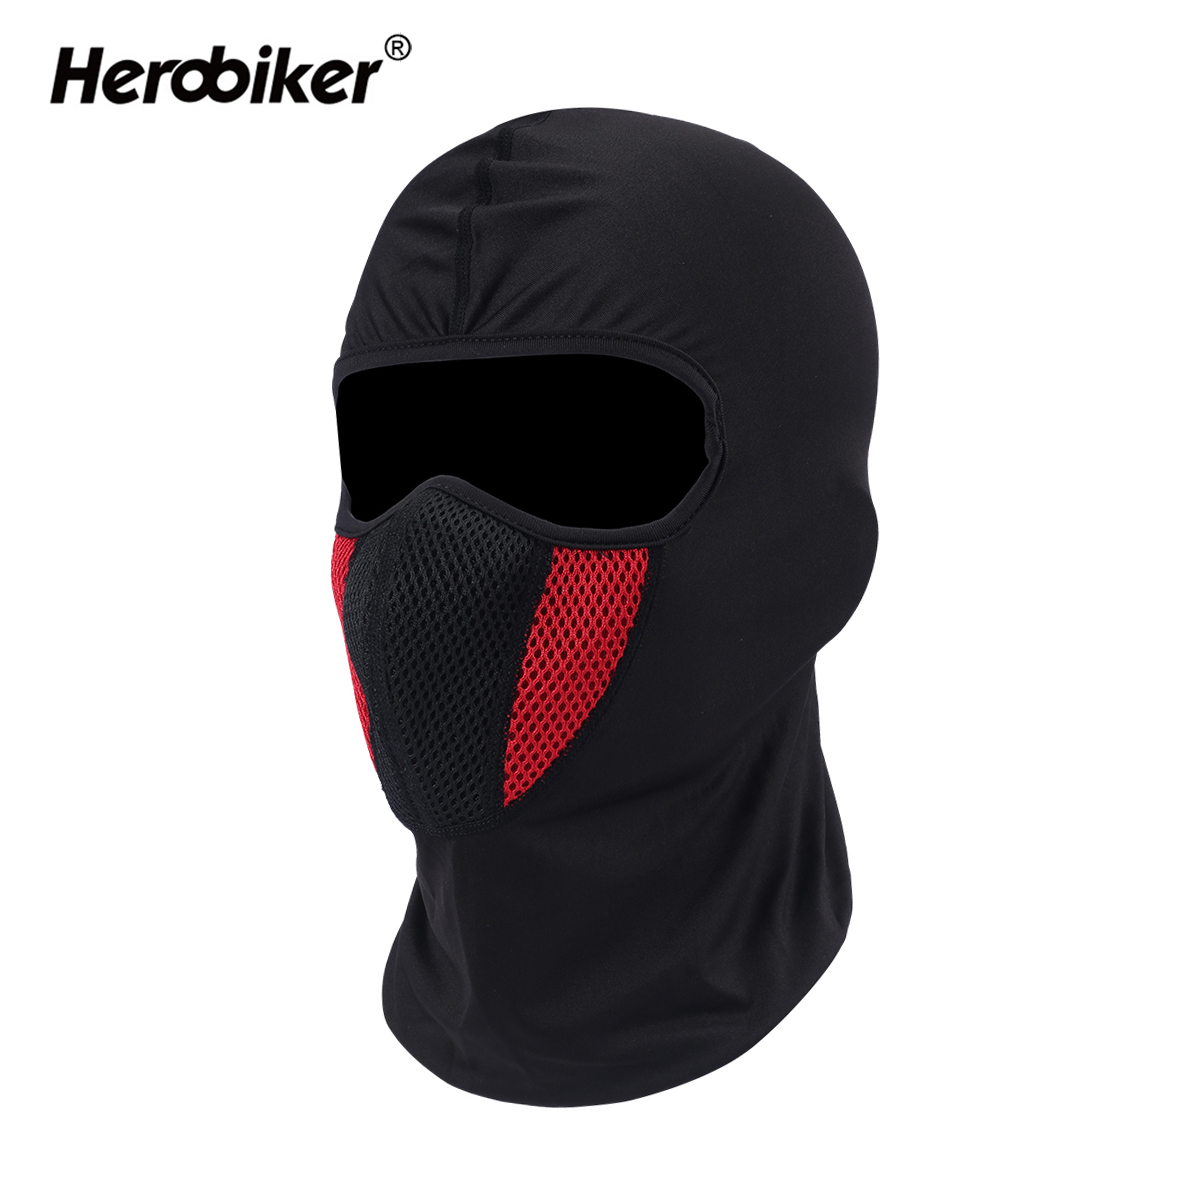 HEROBIKER Balaclava Moto Face Mask Motorcycle Face Shield Tactical Airsoft Paintball Cycling Bike Ski Army Helmet Full Face Mask